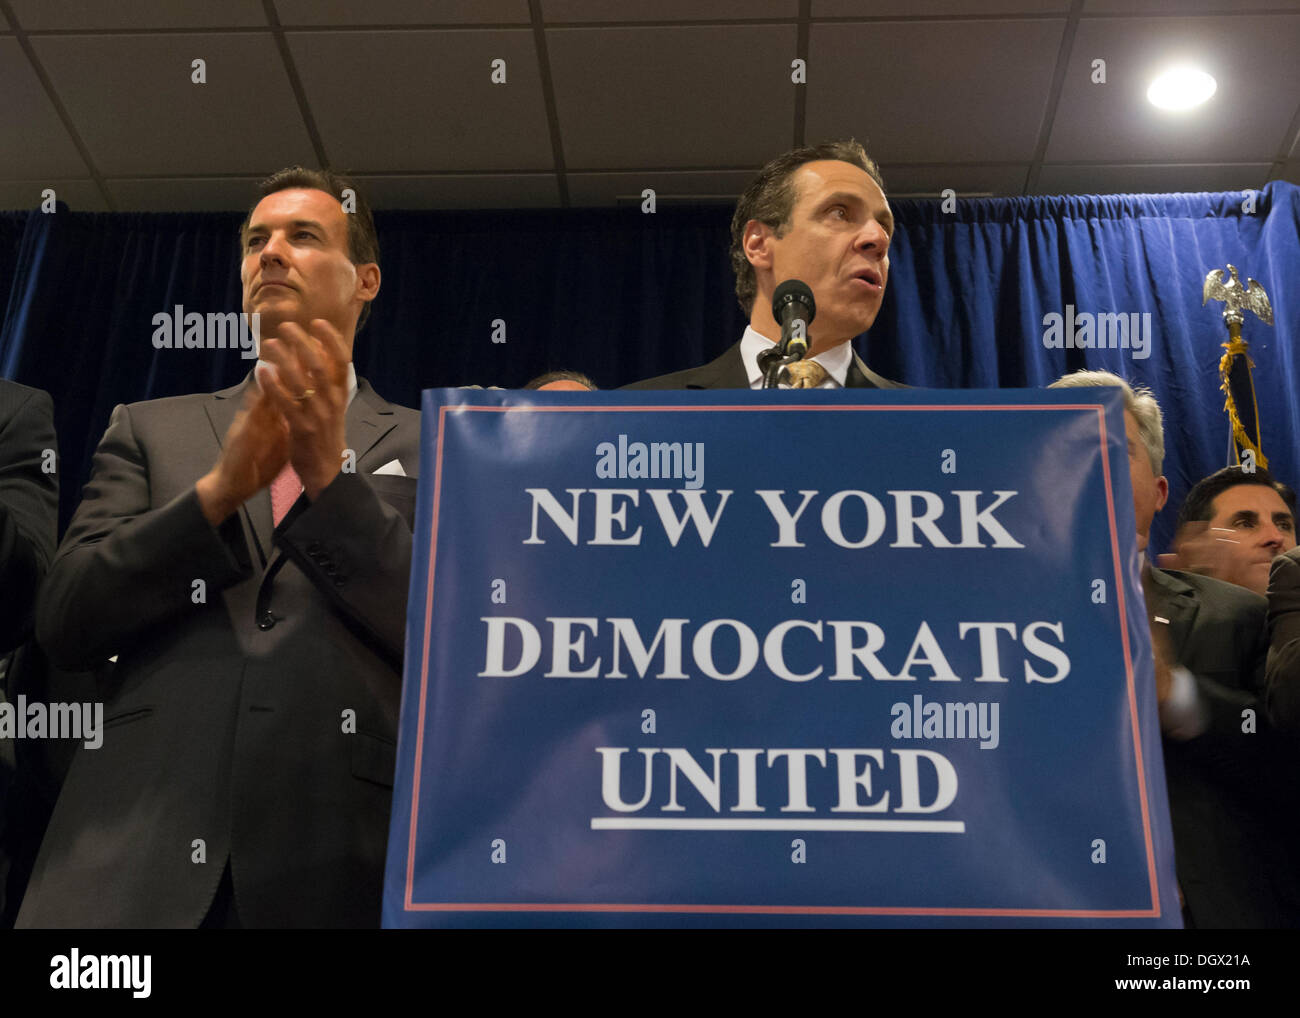 Albertson, New York, U.S. 26th October 2013. New York Governor ANDREW CUOMO, at podium, endorses TOM SUOZZI, left of him, for Nassau County Executive, with supporters, including veterans, union members, and Democratic candidates for office in Nassau and Suffoilk Counties in Long Island, filling the announcement room at the Albertson Veterans of Foreign Wars VFW Post. Democrat Suozzi, the former Nassau County Executive, and Republican encumbant Mangano face each other in a rematch in the upcoming November 5th election. © Ann E Parry/Alamy Live News - Stock Image